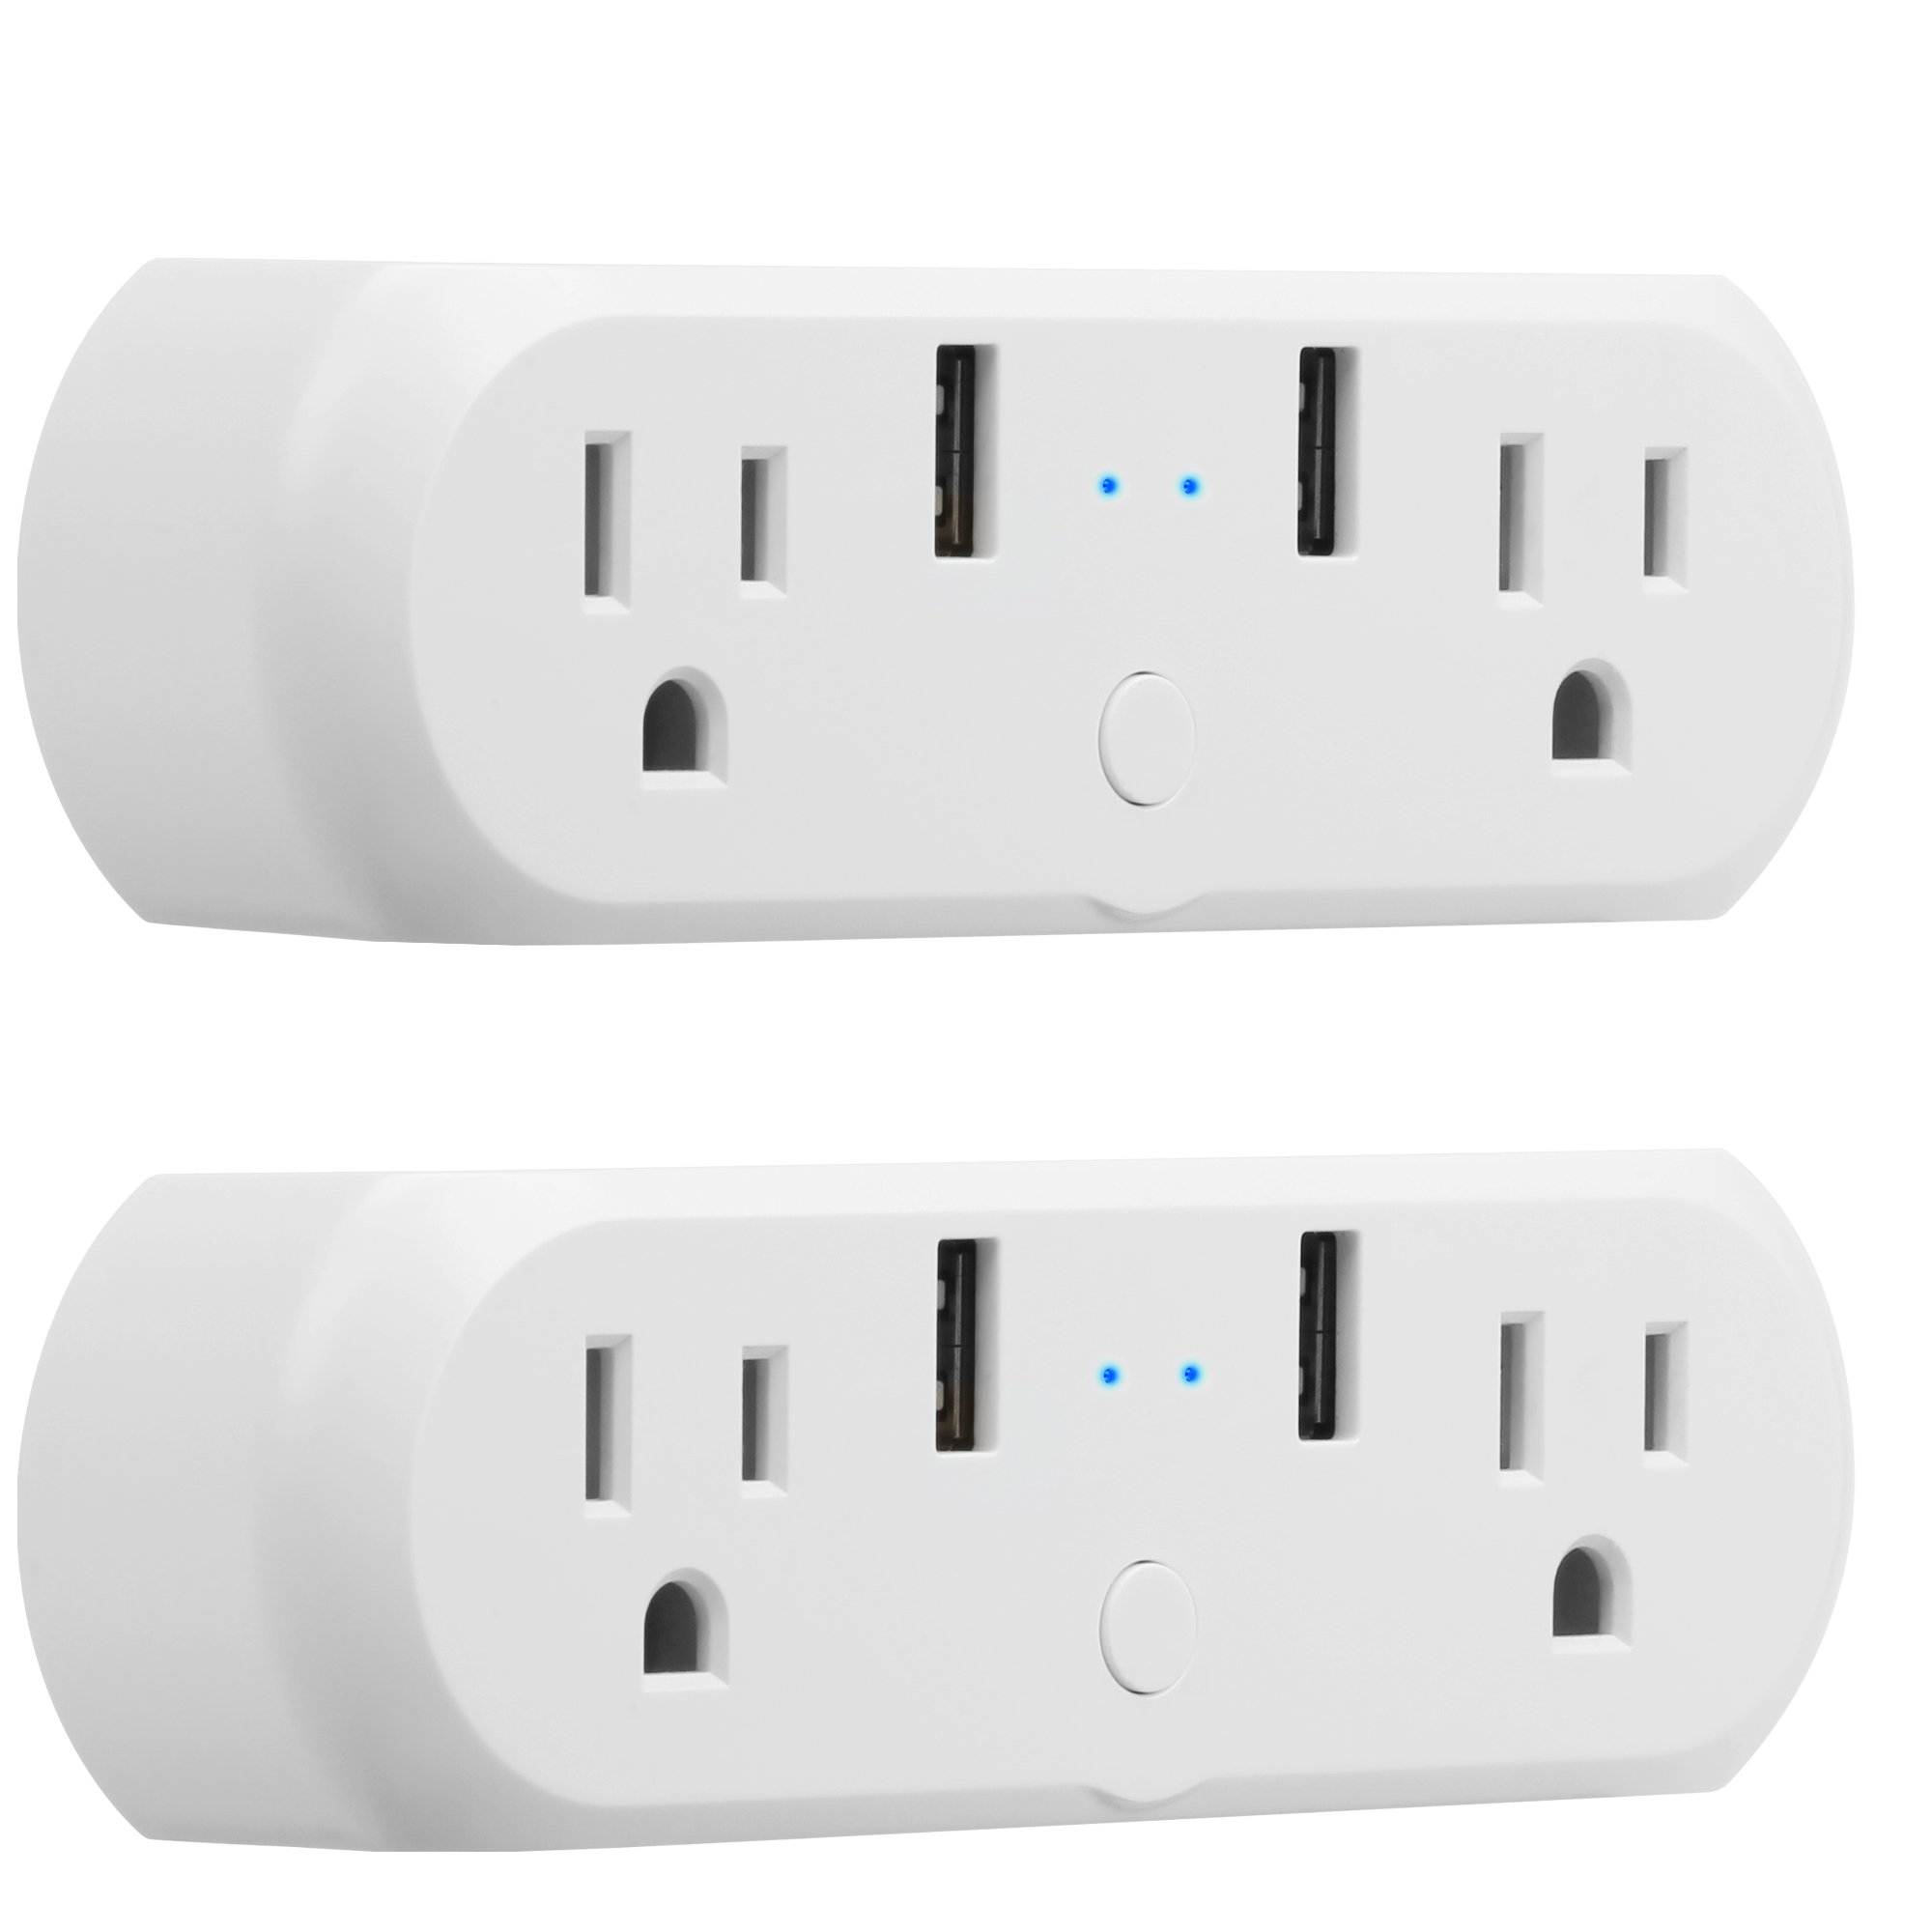 Dual Outlets WiFi Smart Plug Mini, GMYLE Power Wall Tap Socket with 2 USB Ports, Work Individually or Group, Remote Control Your Home Equipment, Works with Amazon Alexa & Google Home - 2 Packs